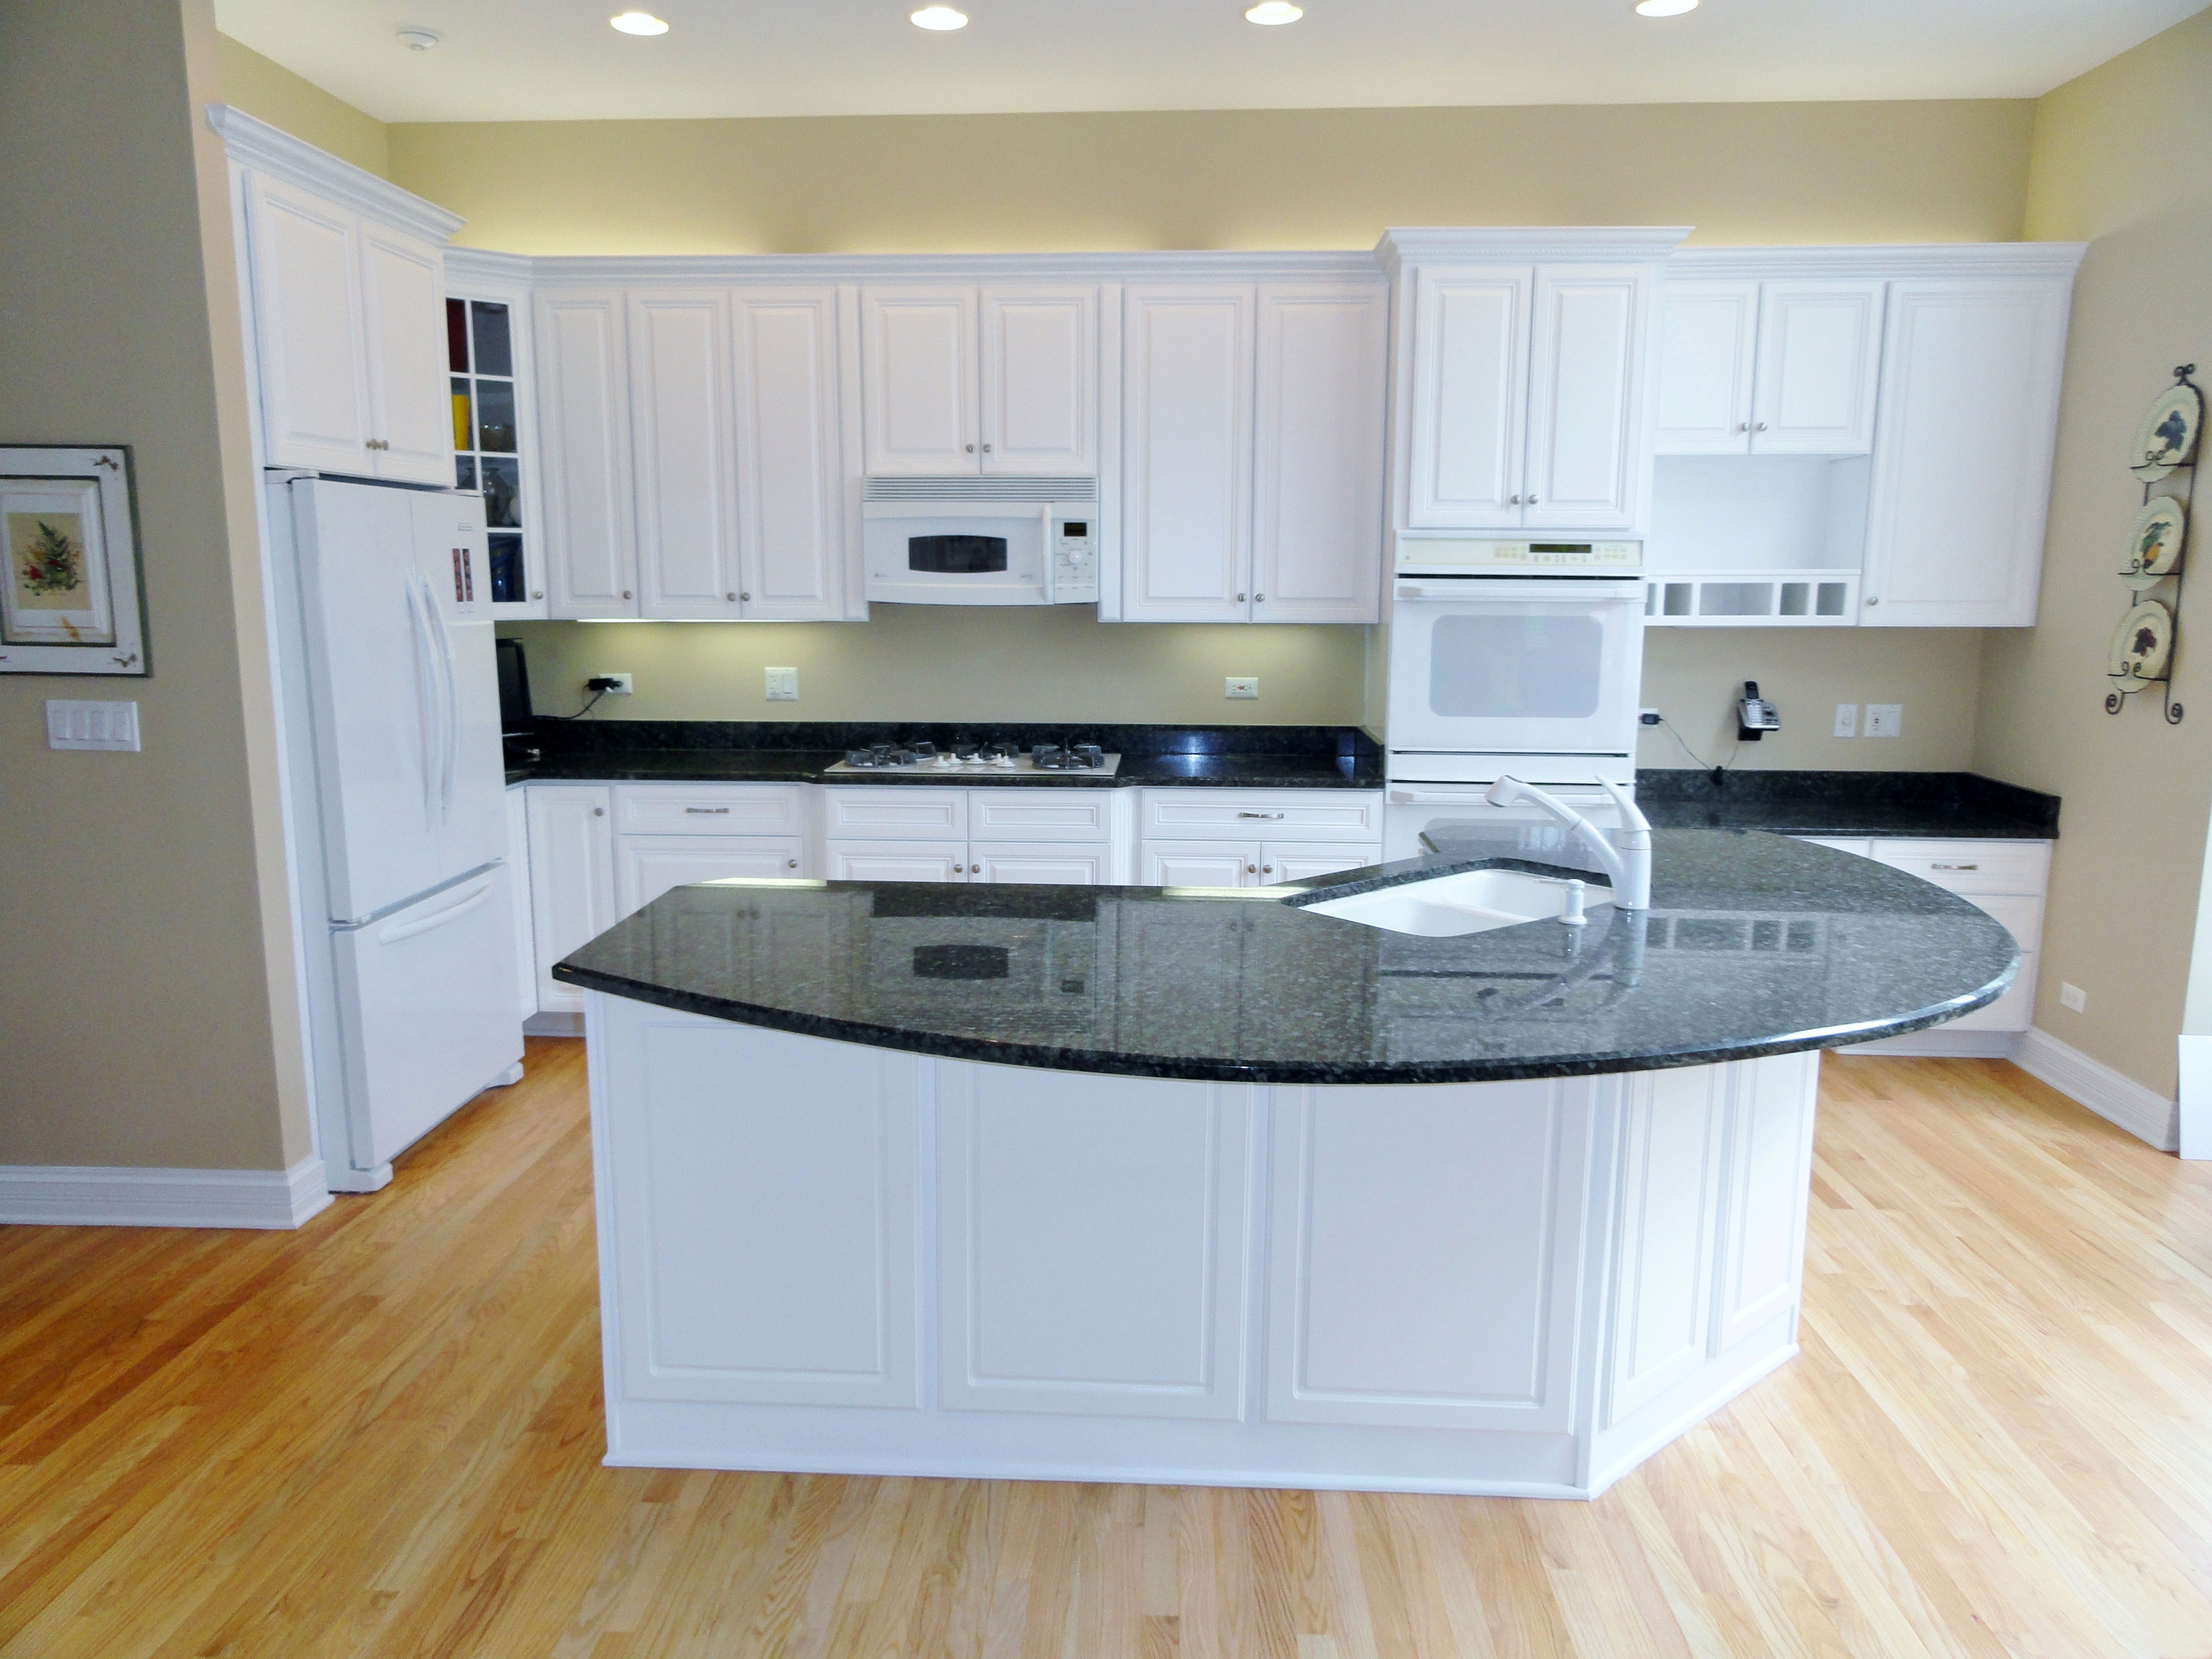 photos kitchen cabinet refacing 30 Cabinet refacing with white painted maple triple upgrade design